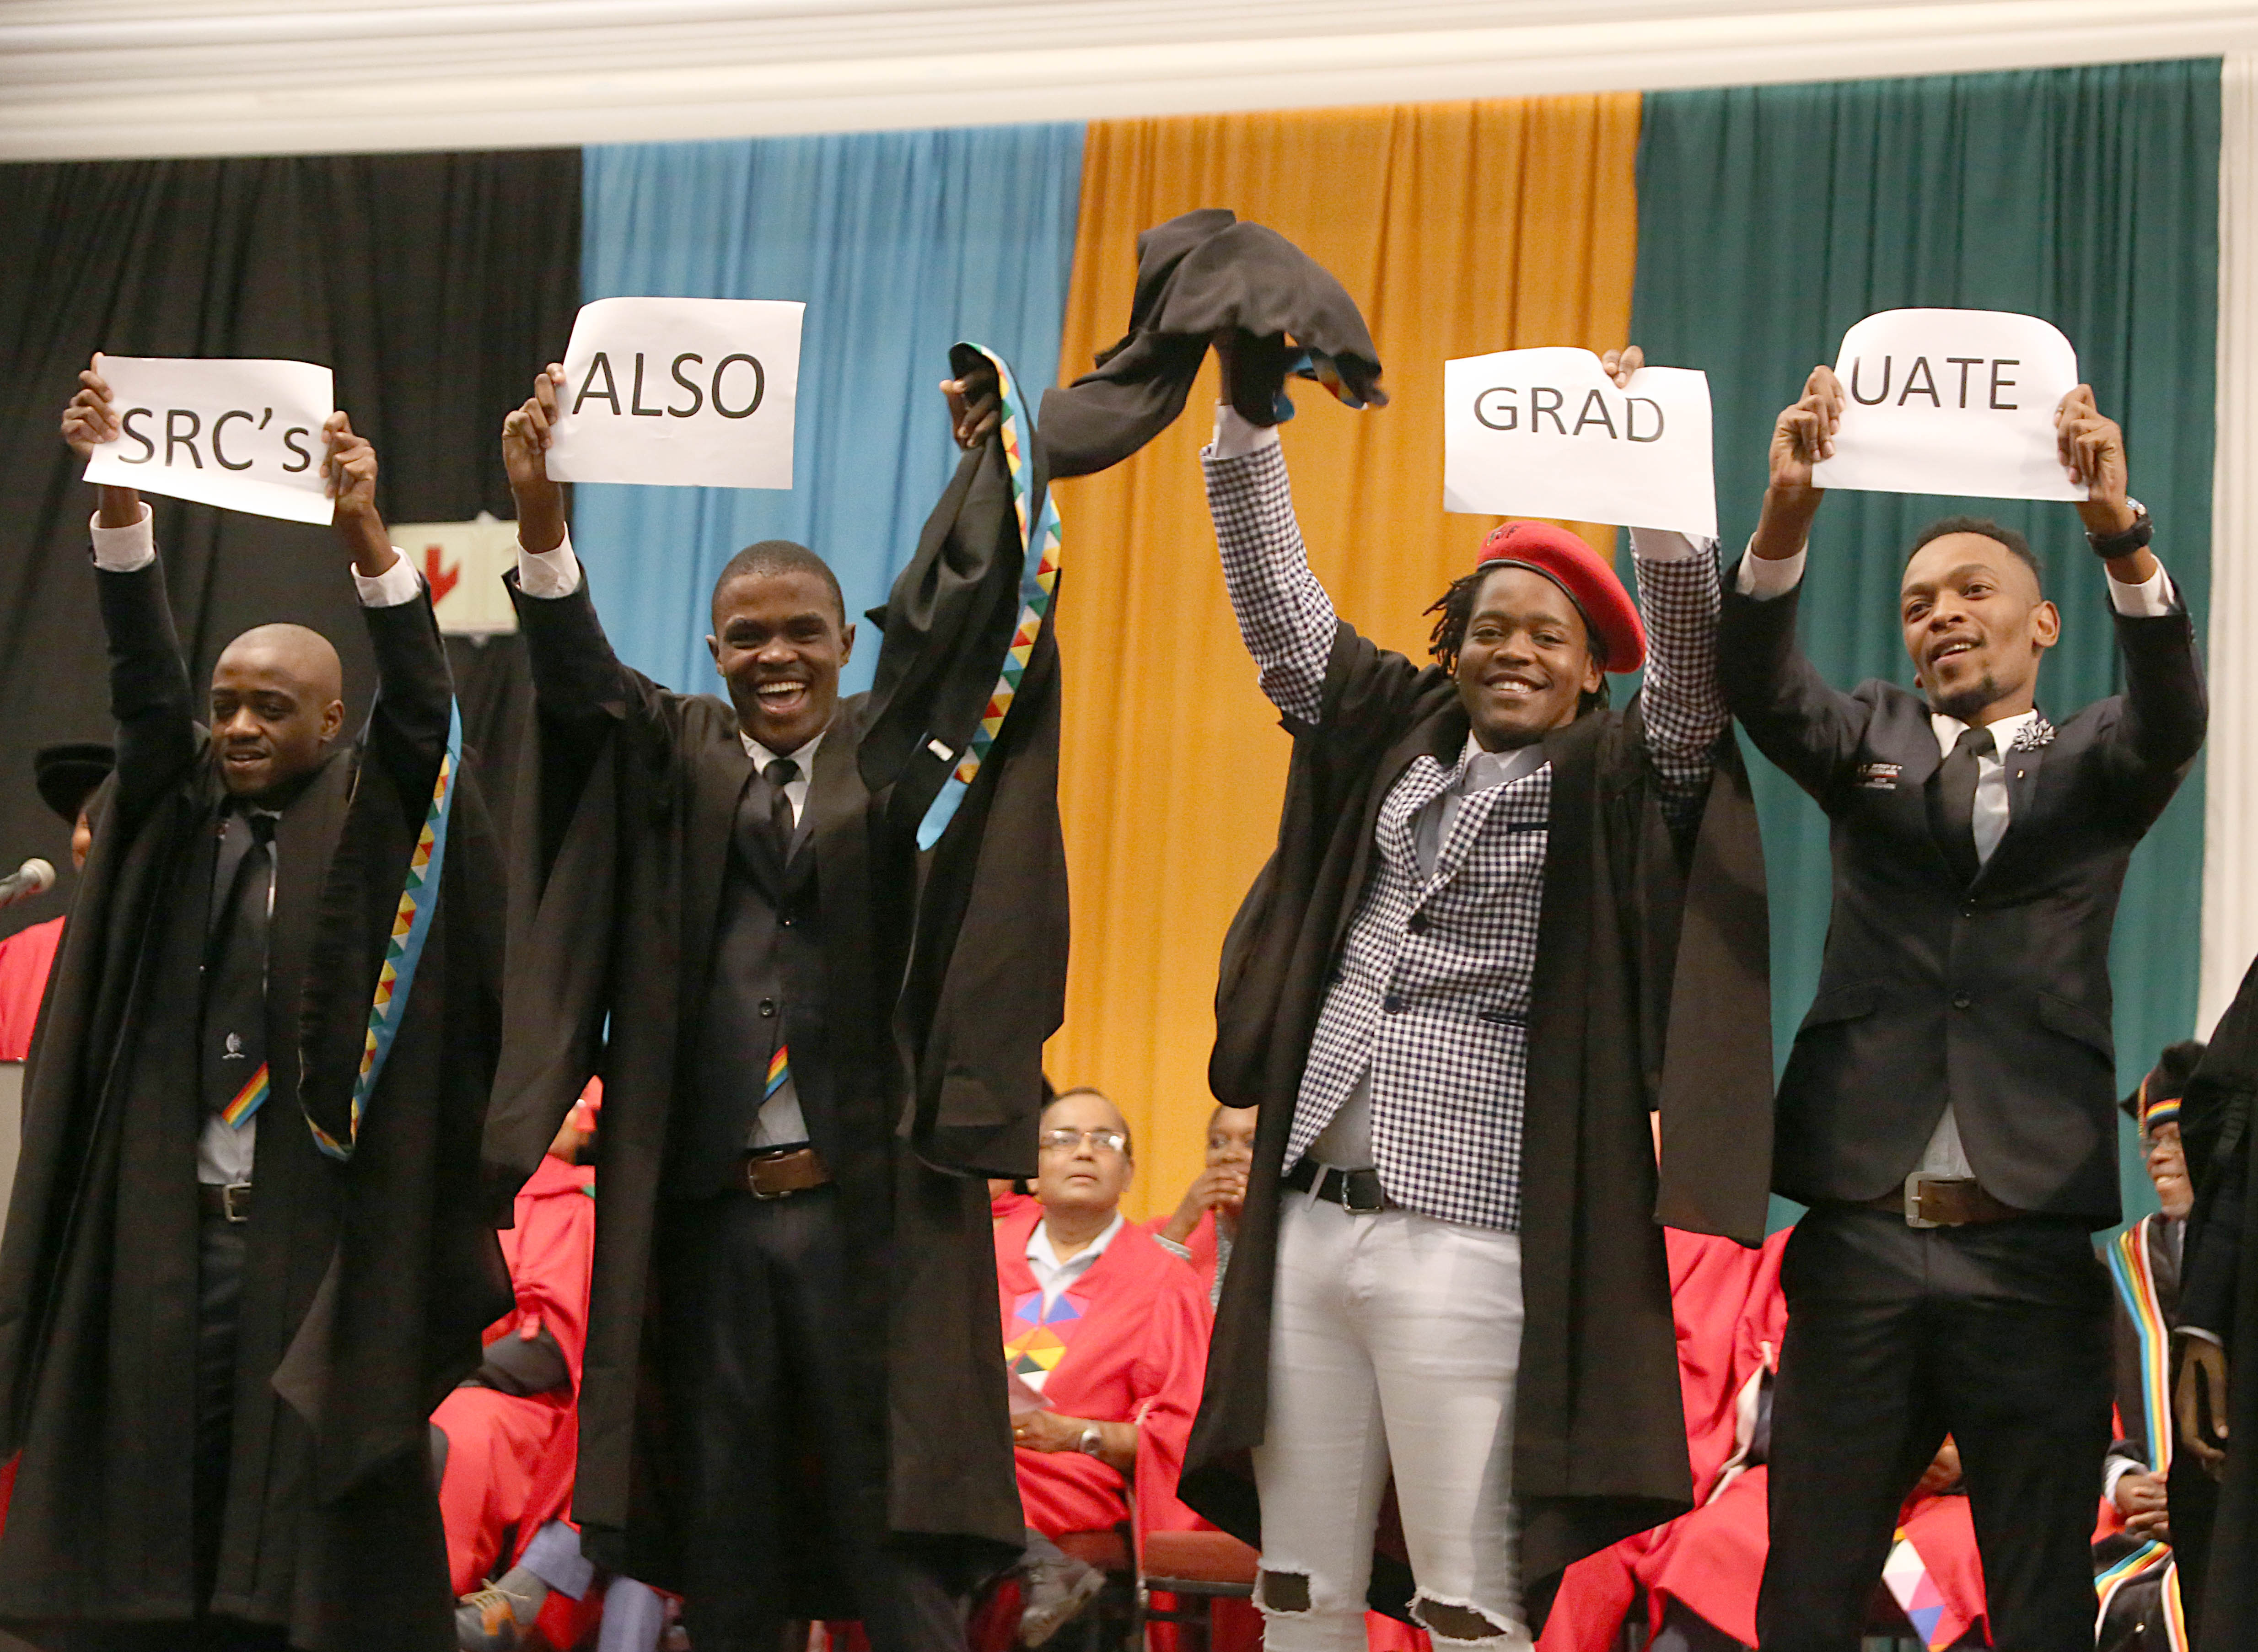 PMB SRC members Phiwayinkosi Mungwe and Samkelo Gudazi graduate with their Bachelor of Social Science degrees.